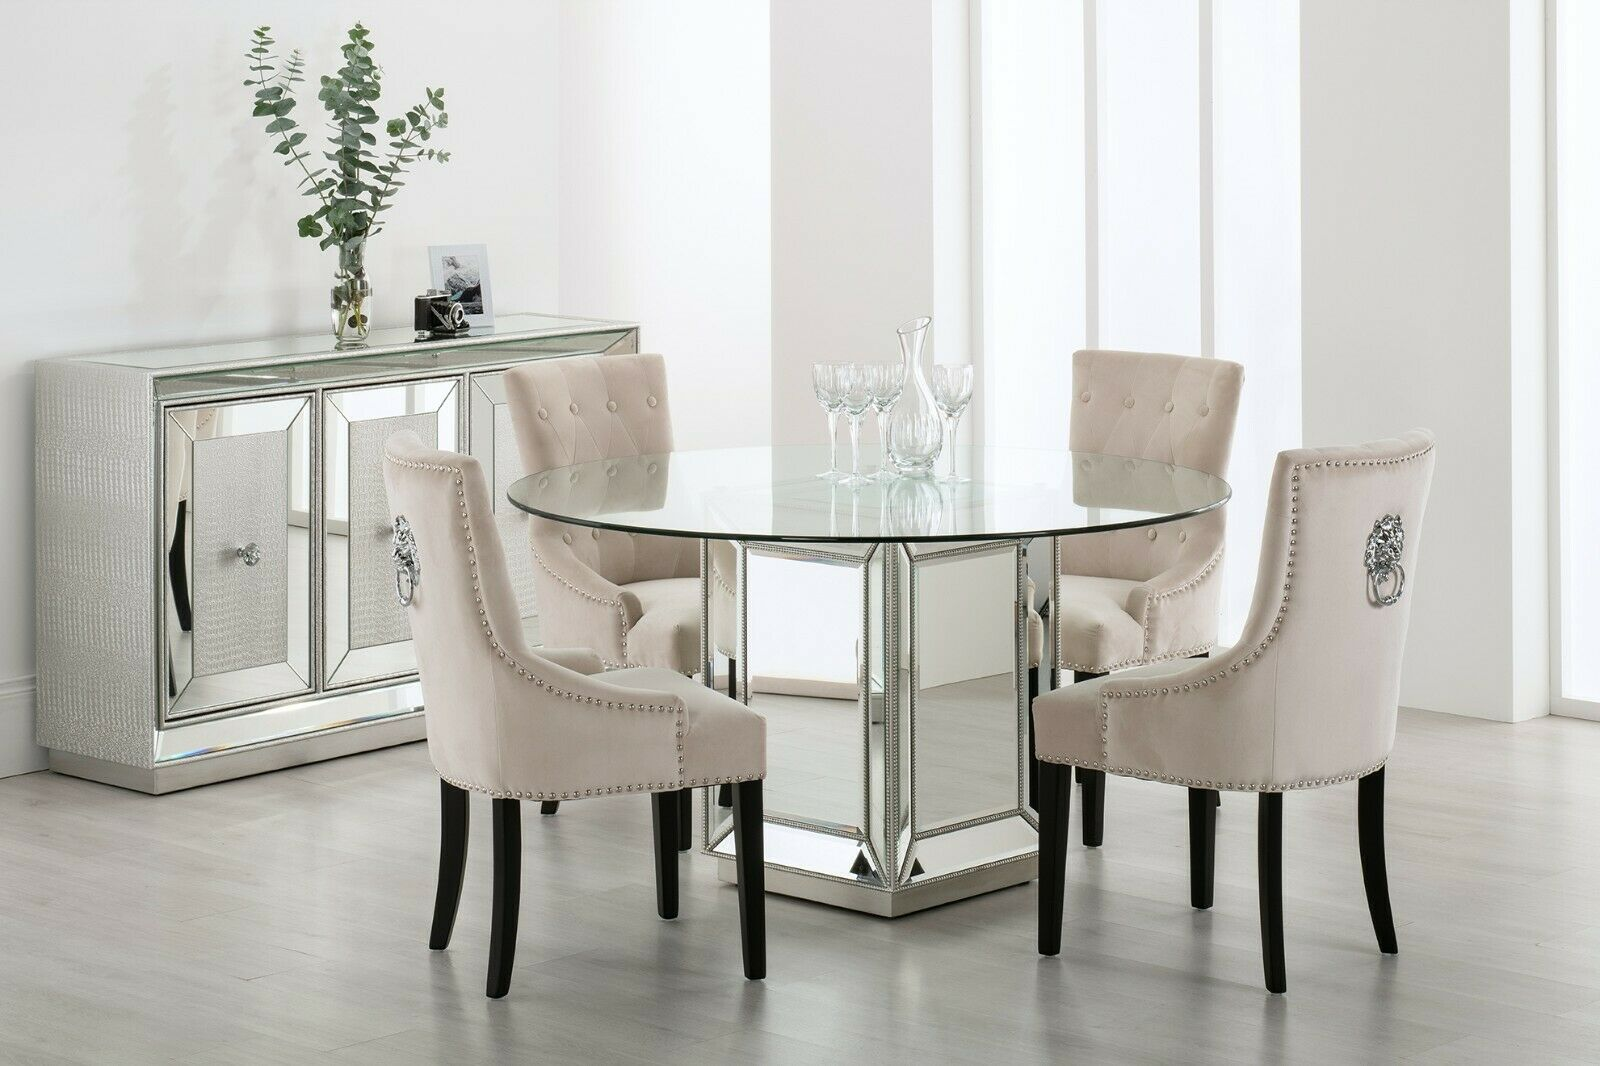 Mirrored Dining Table Vintage Antique Silver Glass Mirror Furniture Square Wood For Sale Ebay